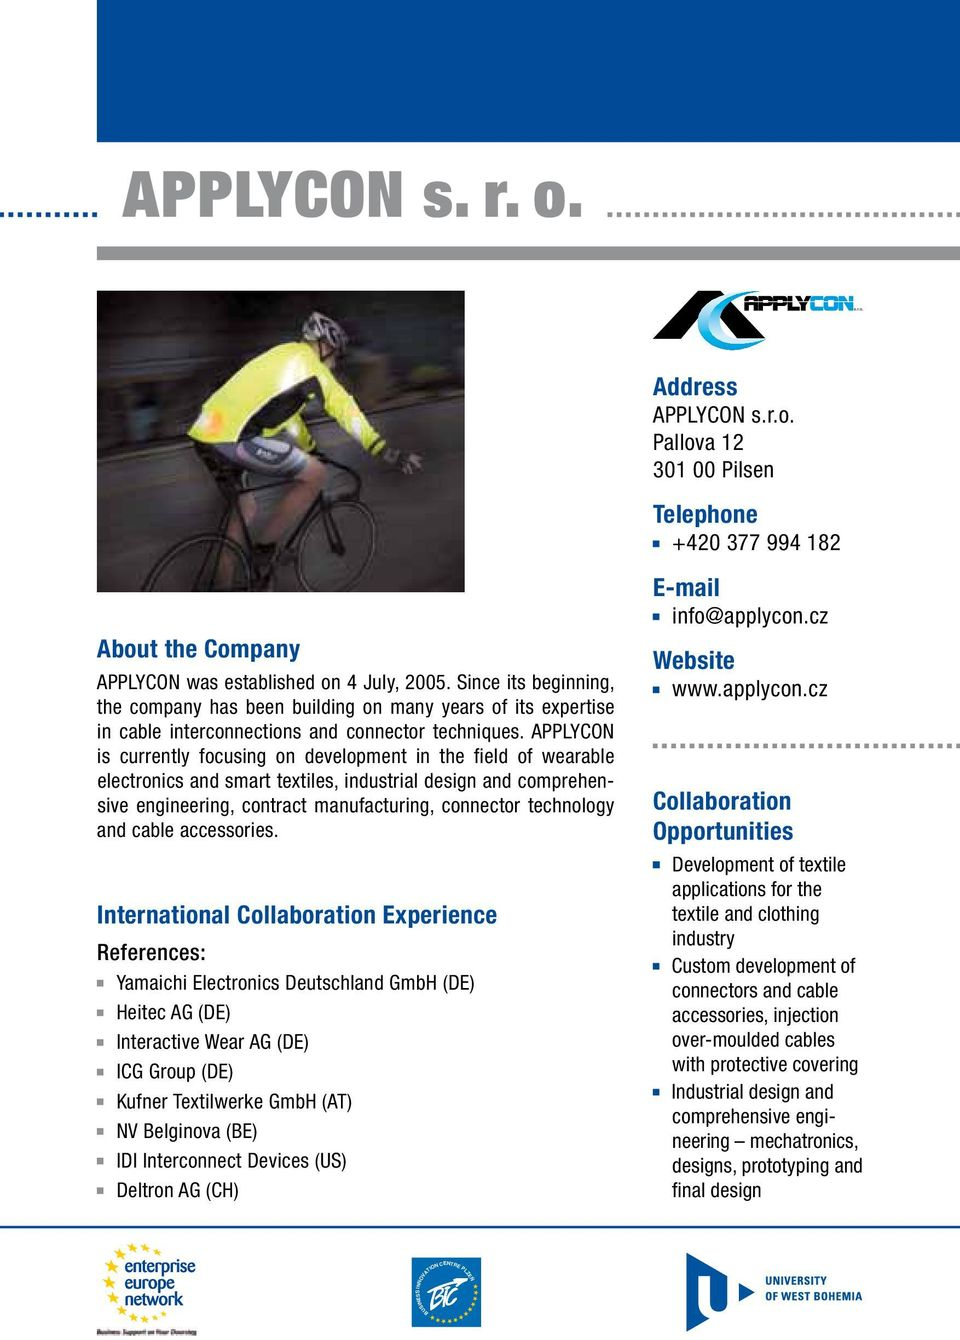 APPLYCON is currently focusing on development in the field of wearable electronics and smart textiles, industrial design and comprehensive engineering, contract manufacturing, connector technology